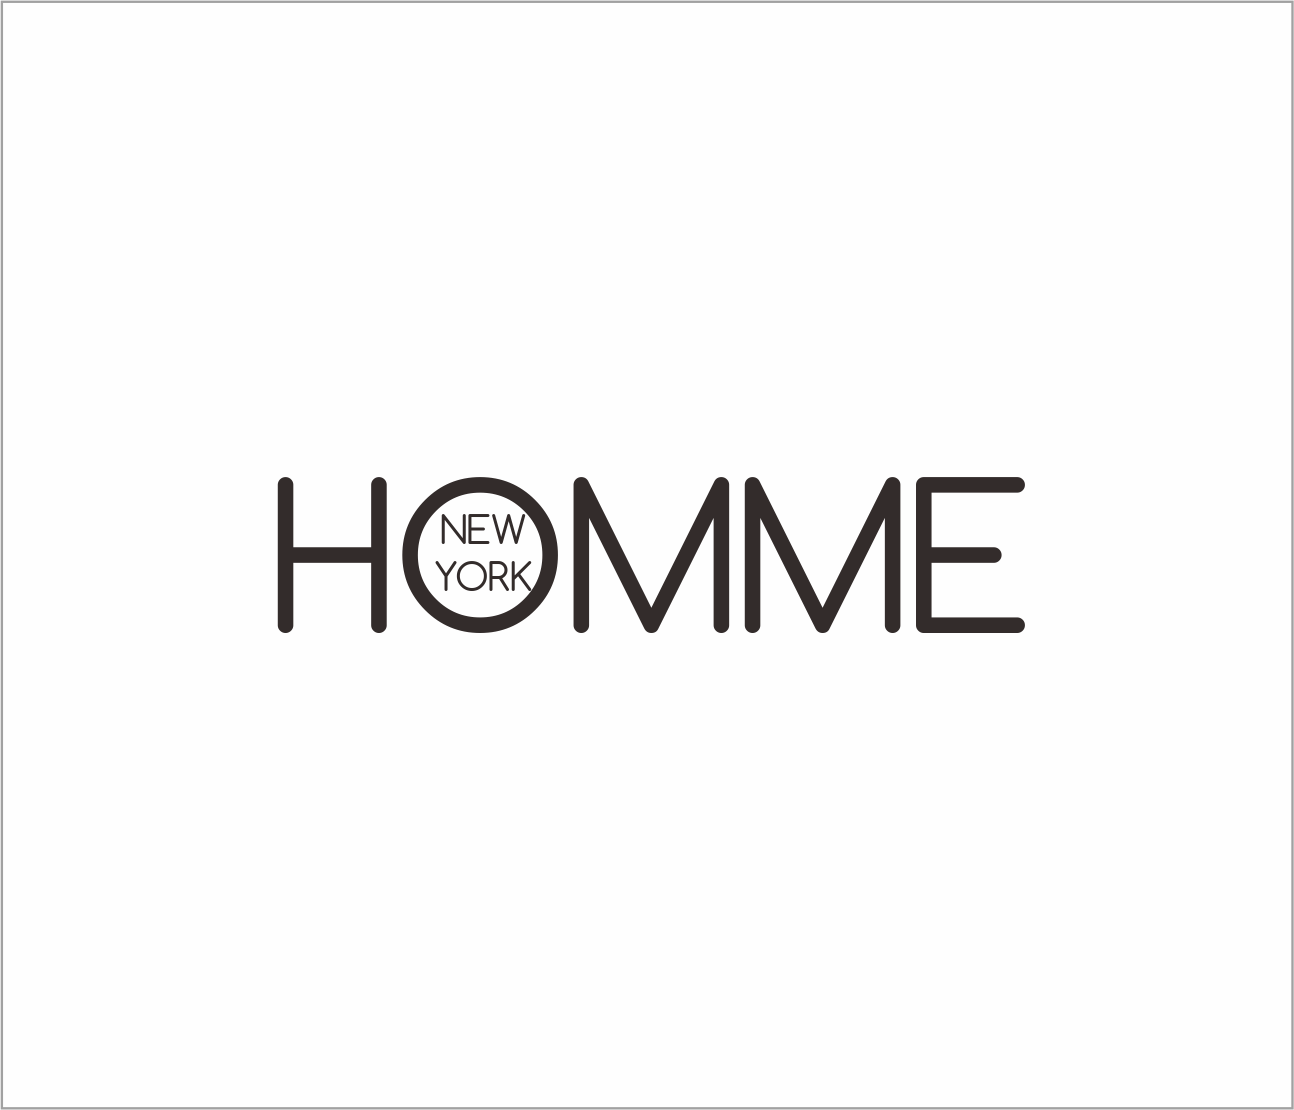 Logo Design by Armada Jamaluddin - Entry No. 98 in the Logo Design Contest Artistic Logo Design for HOMME | NEW YORK.